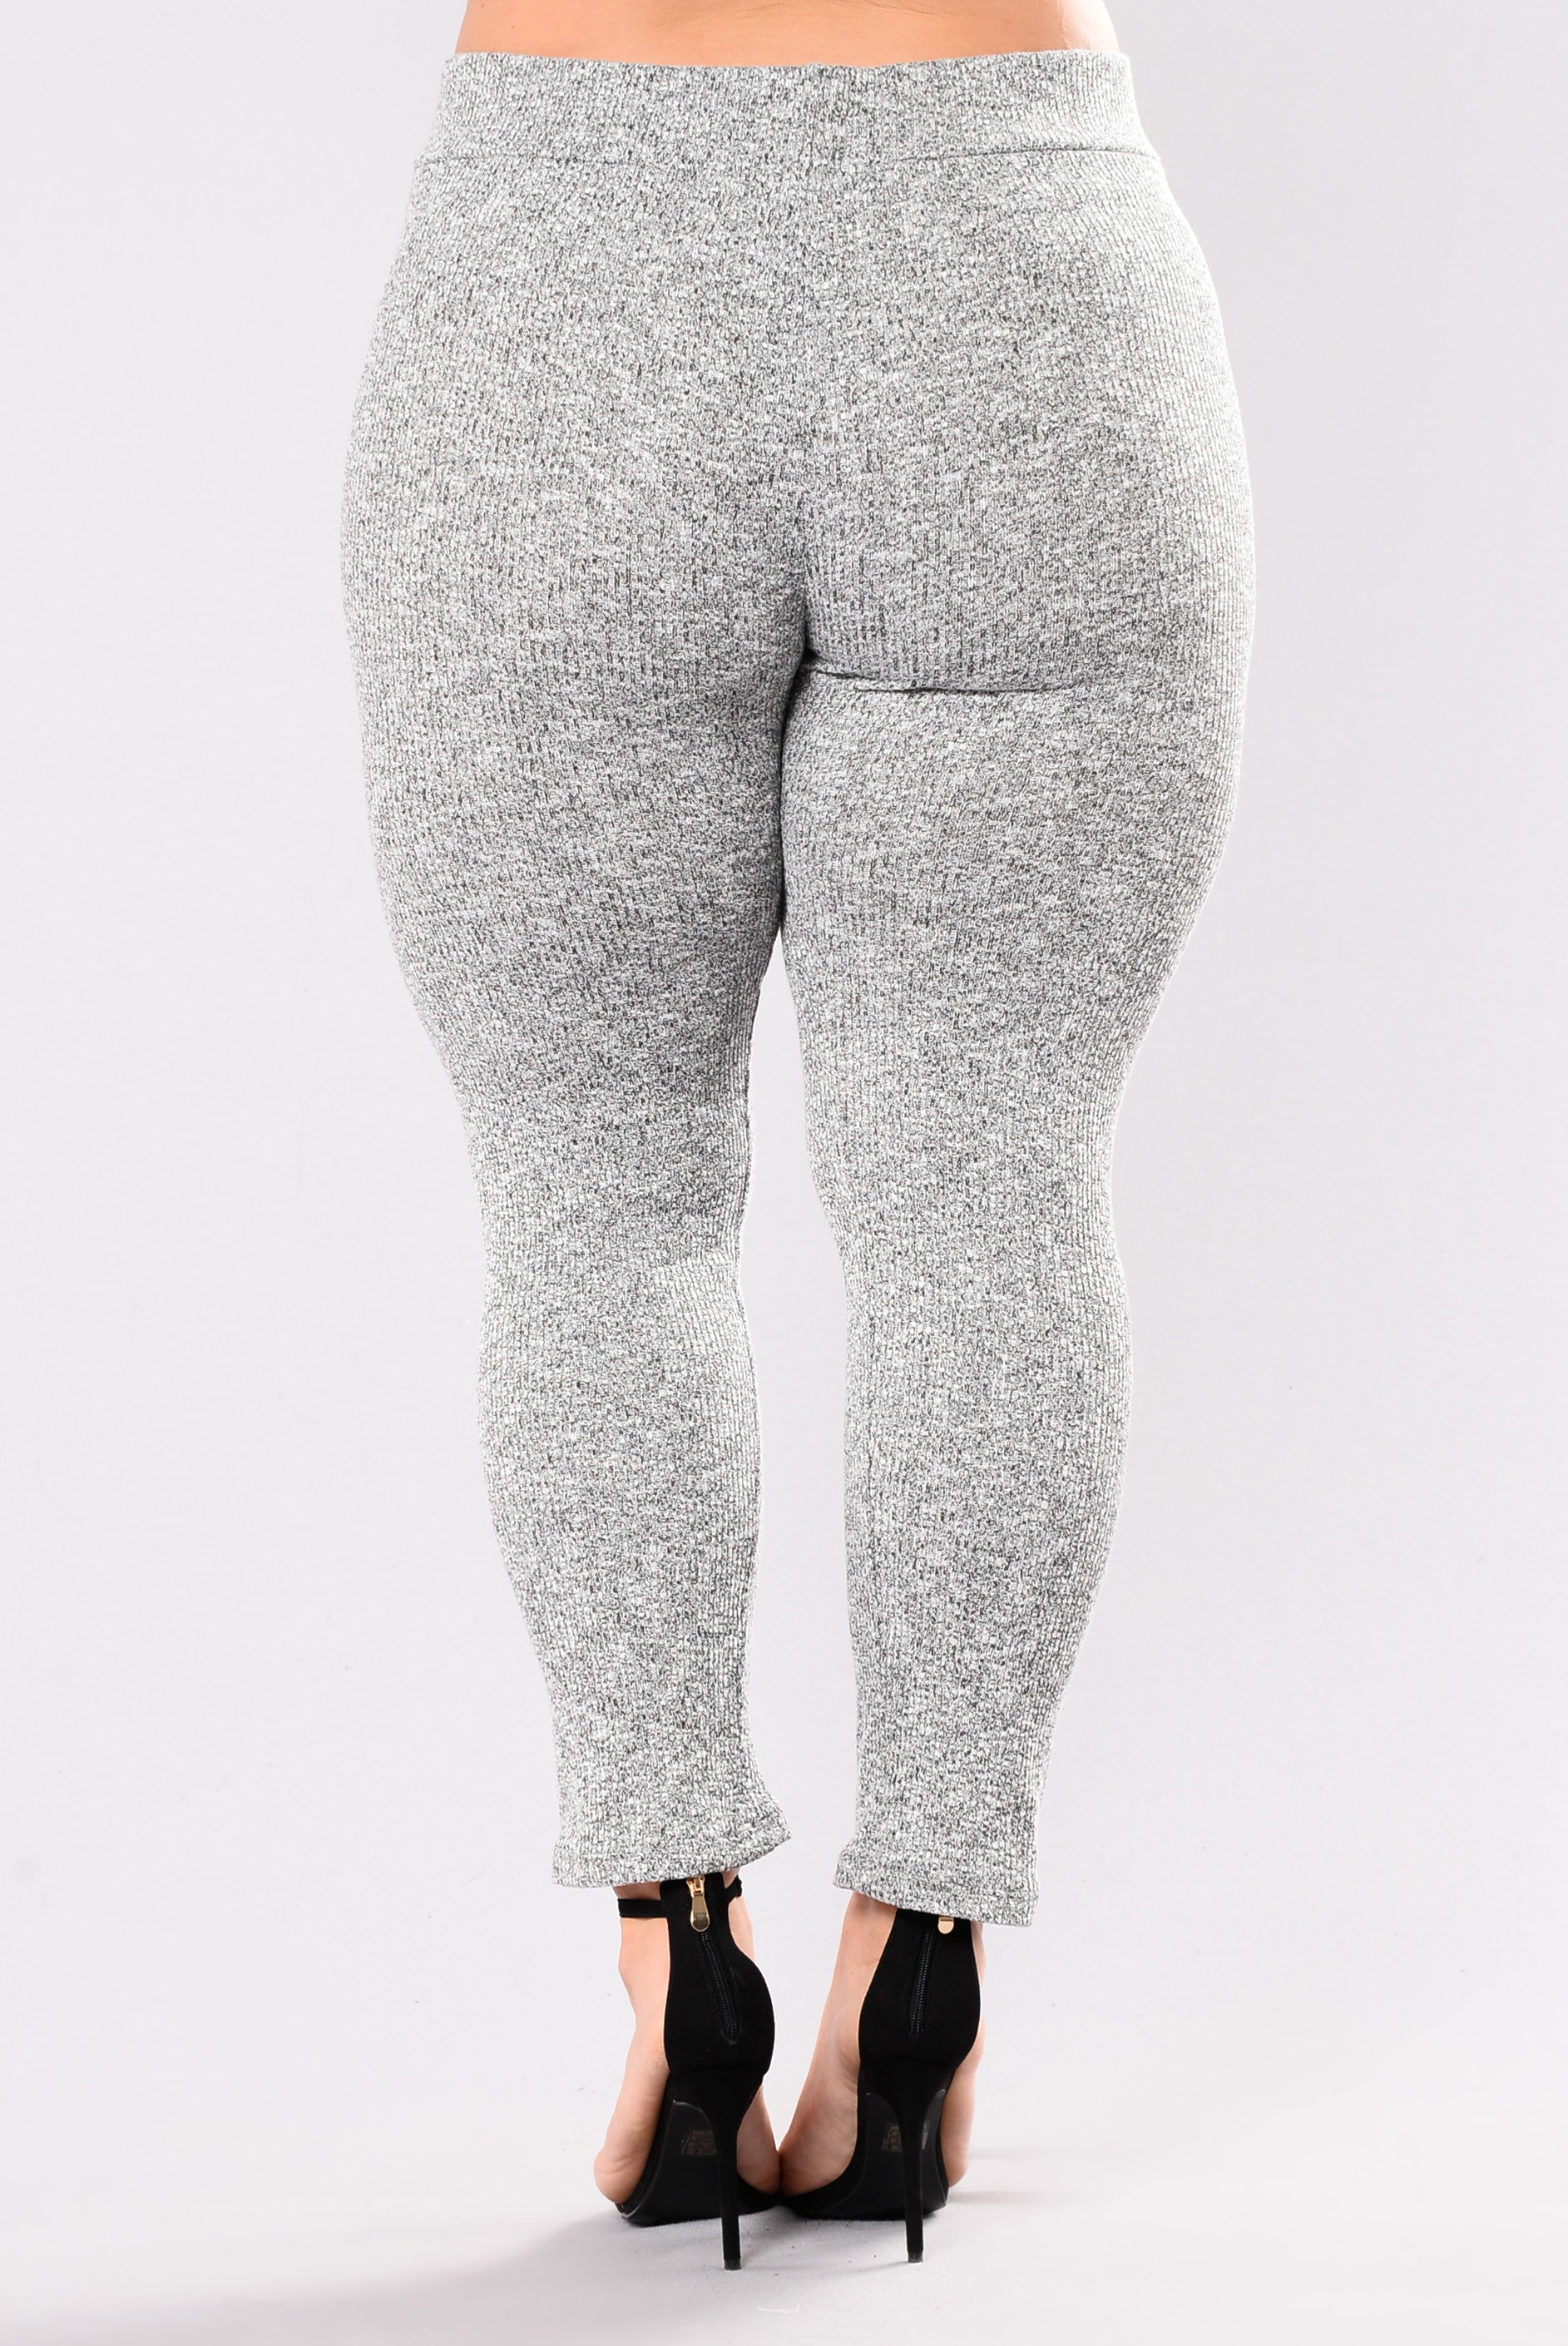 997a98d50bd81f Wanderlust Leggings - Grey